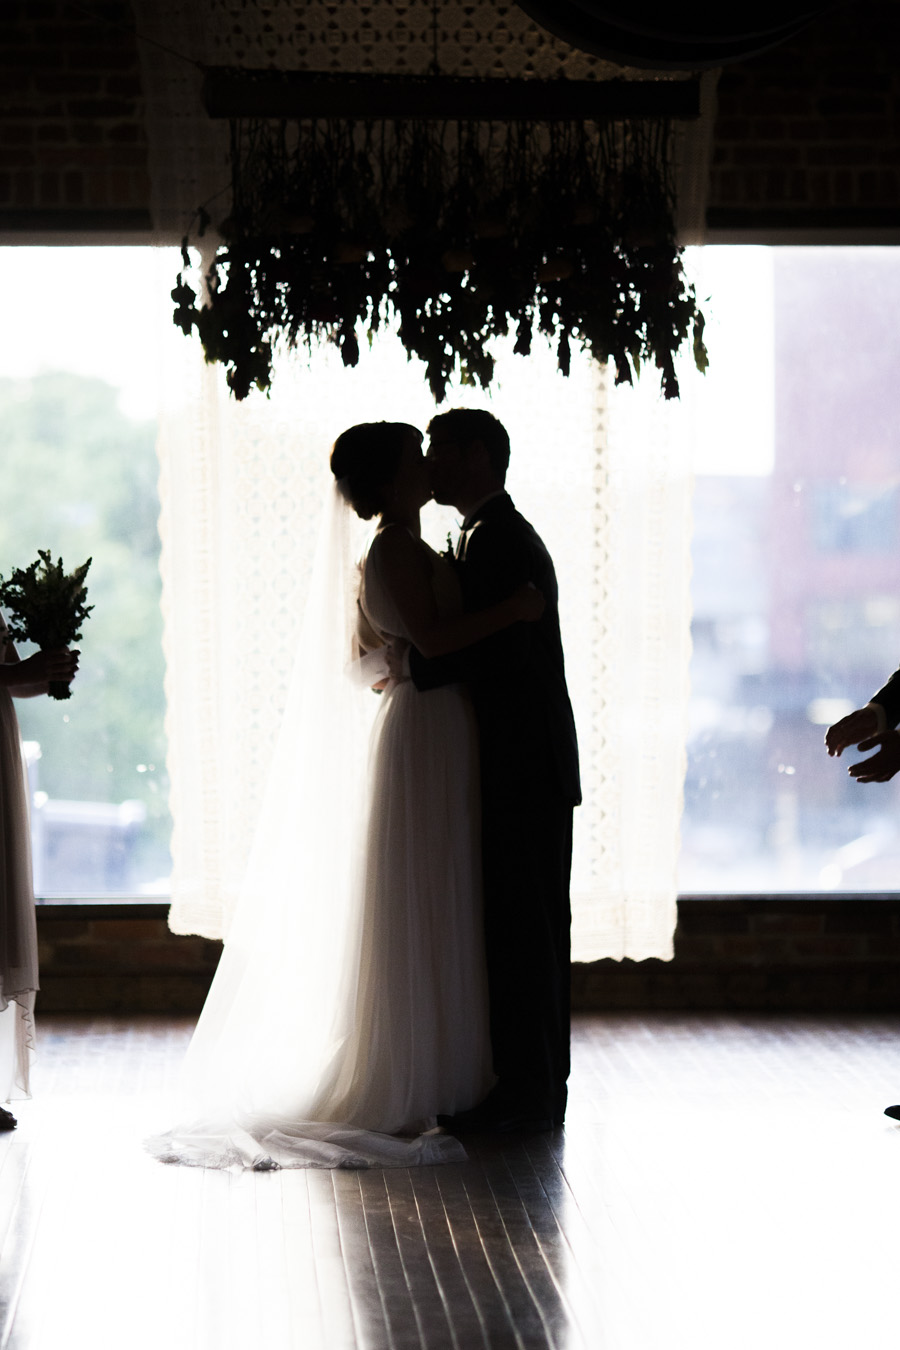 First Kiss Silhouette